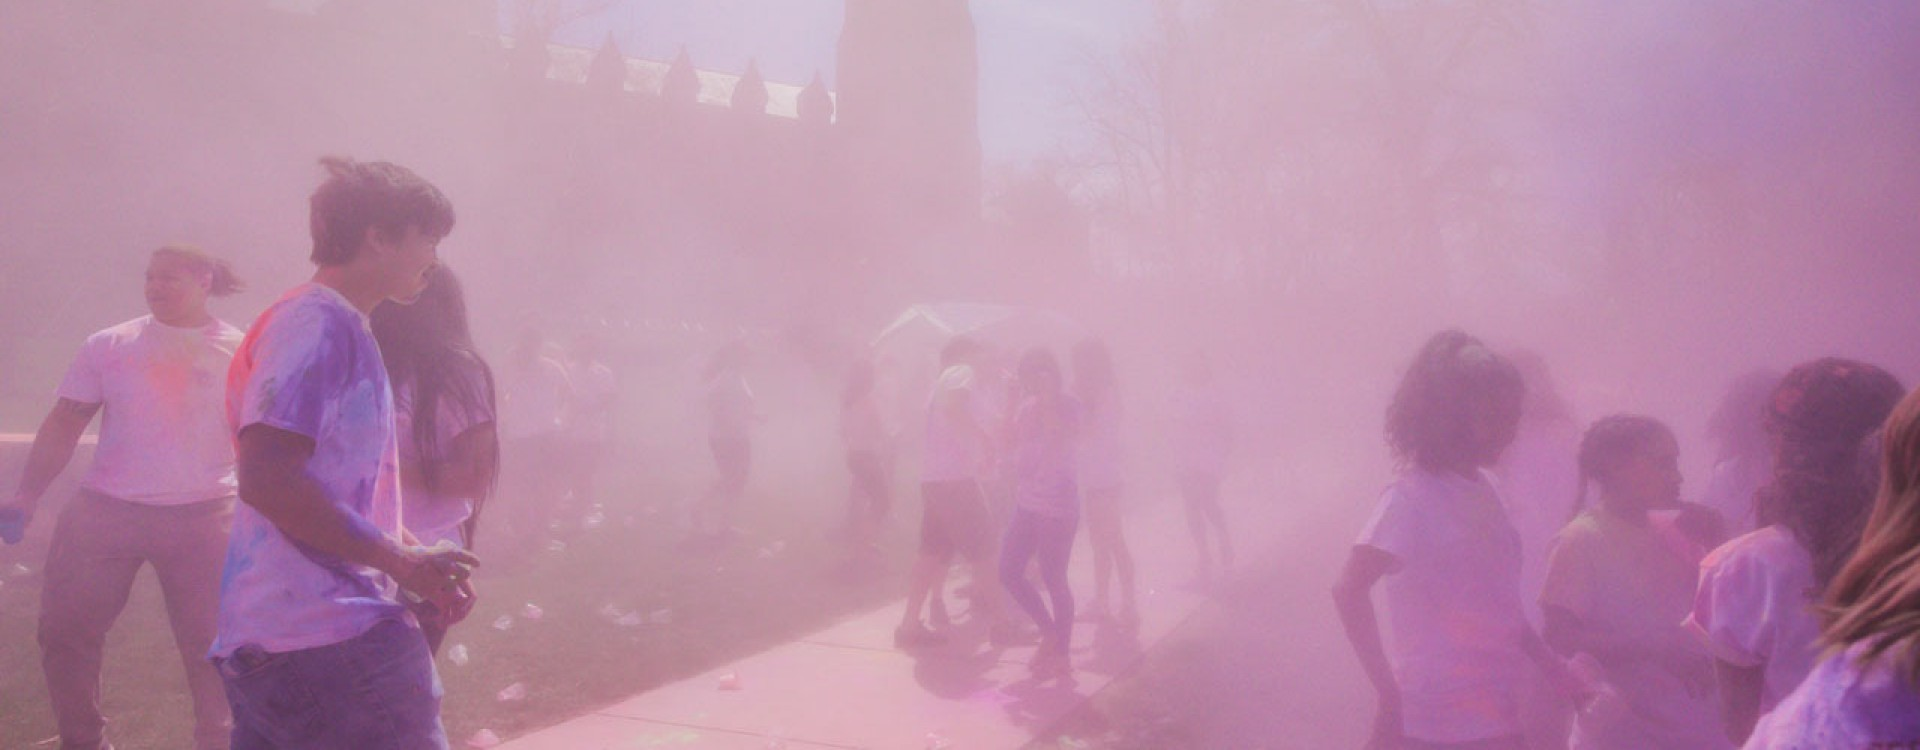 Indian Student Association - Holi event